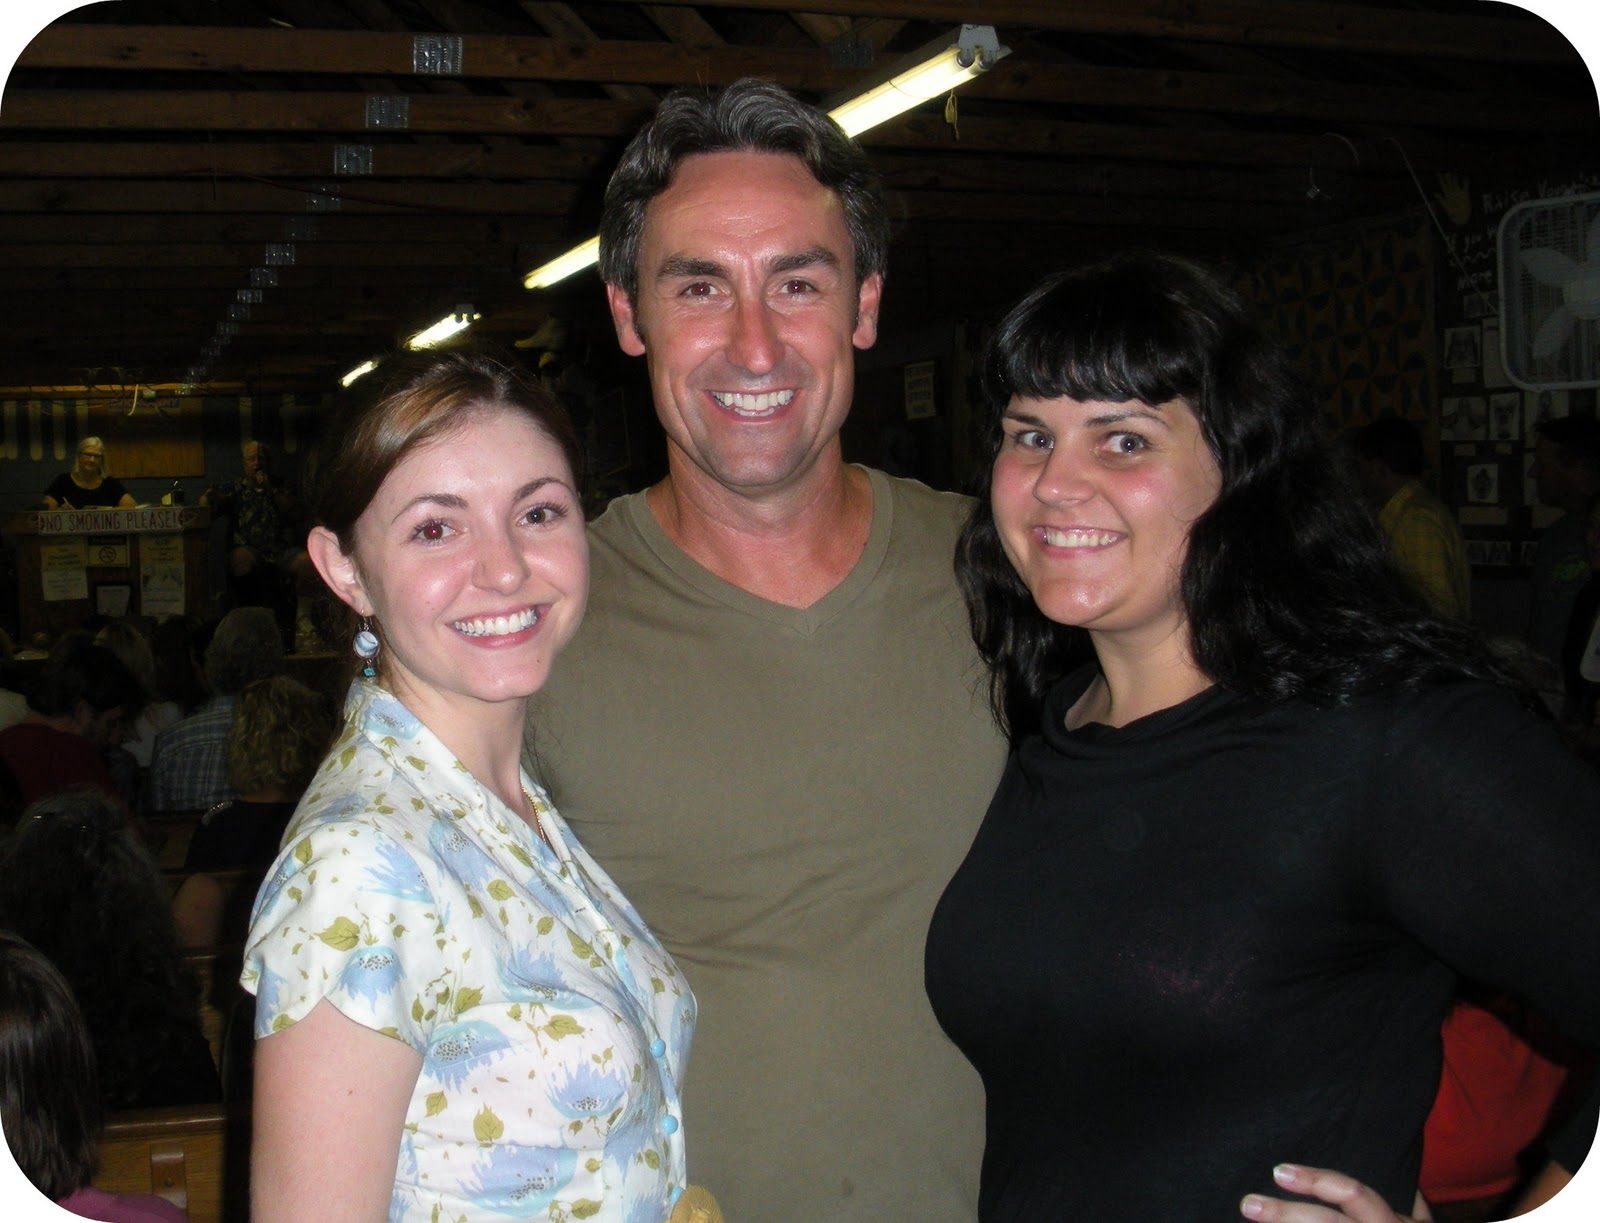 Who is danielle dating on american pickers